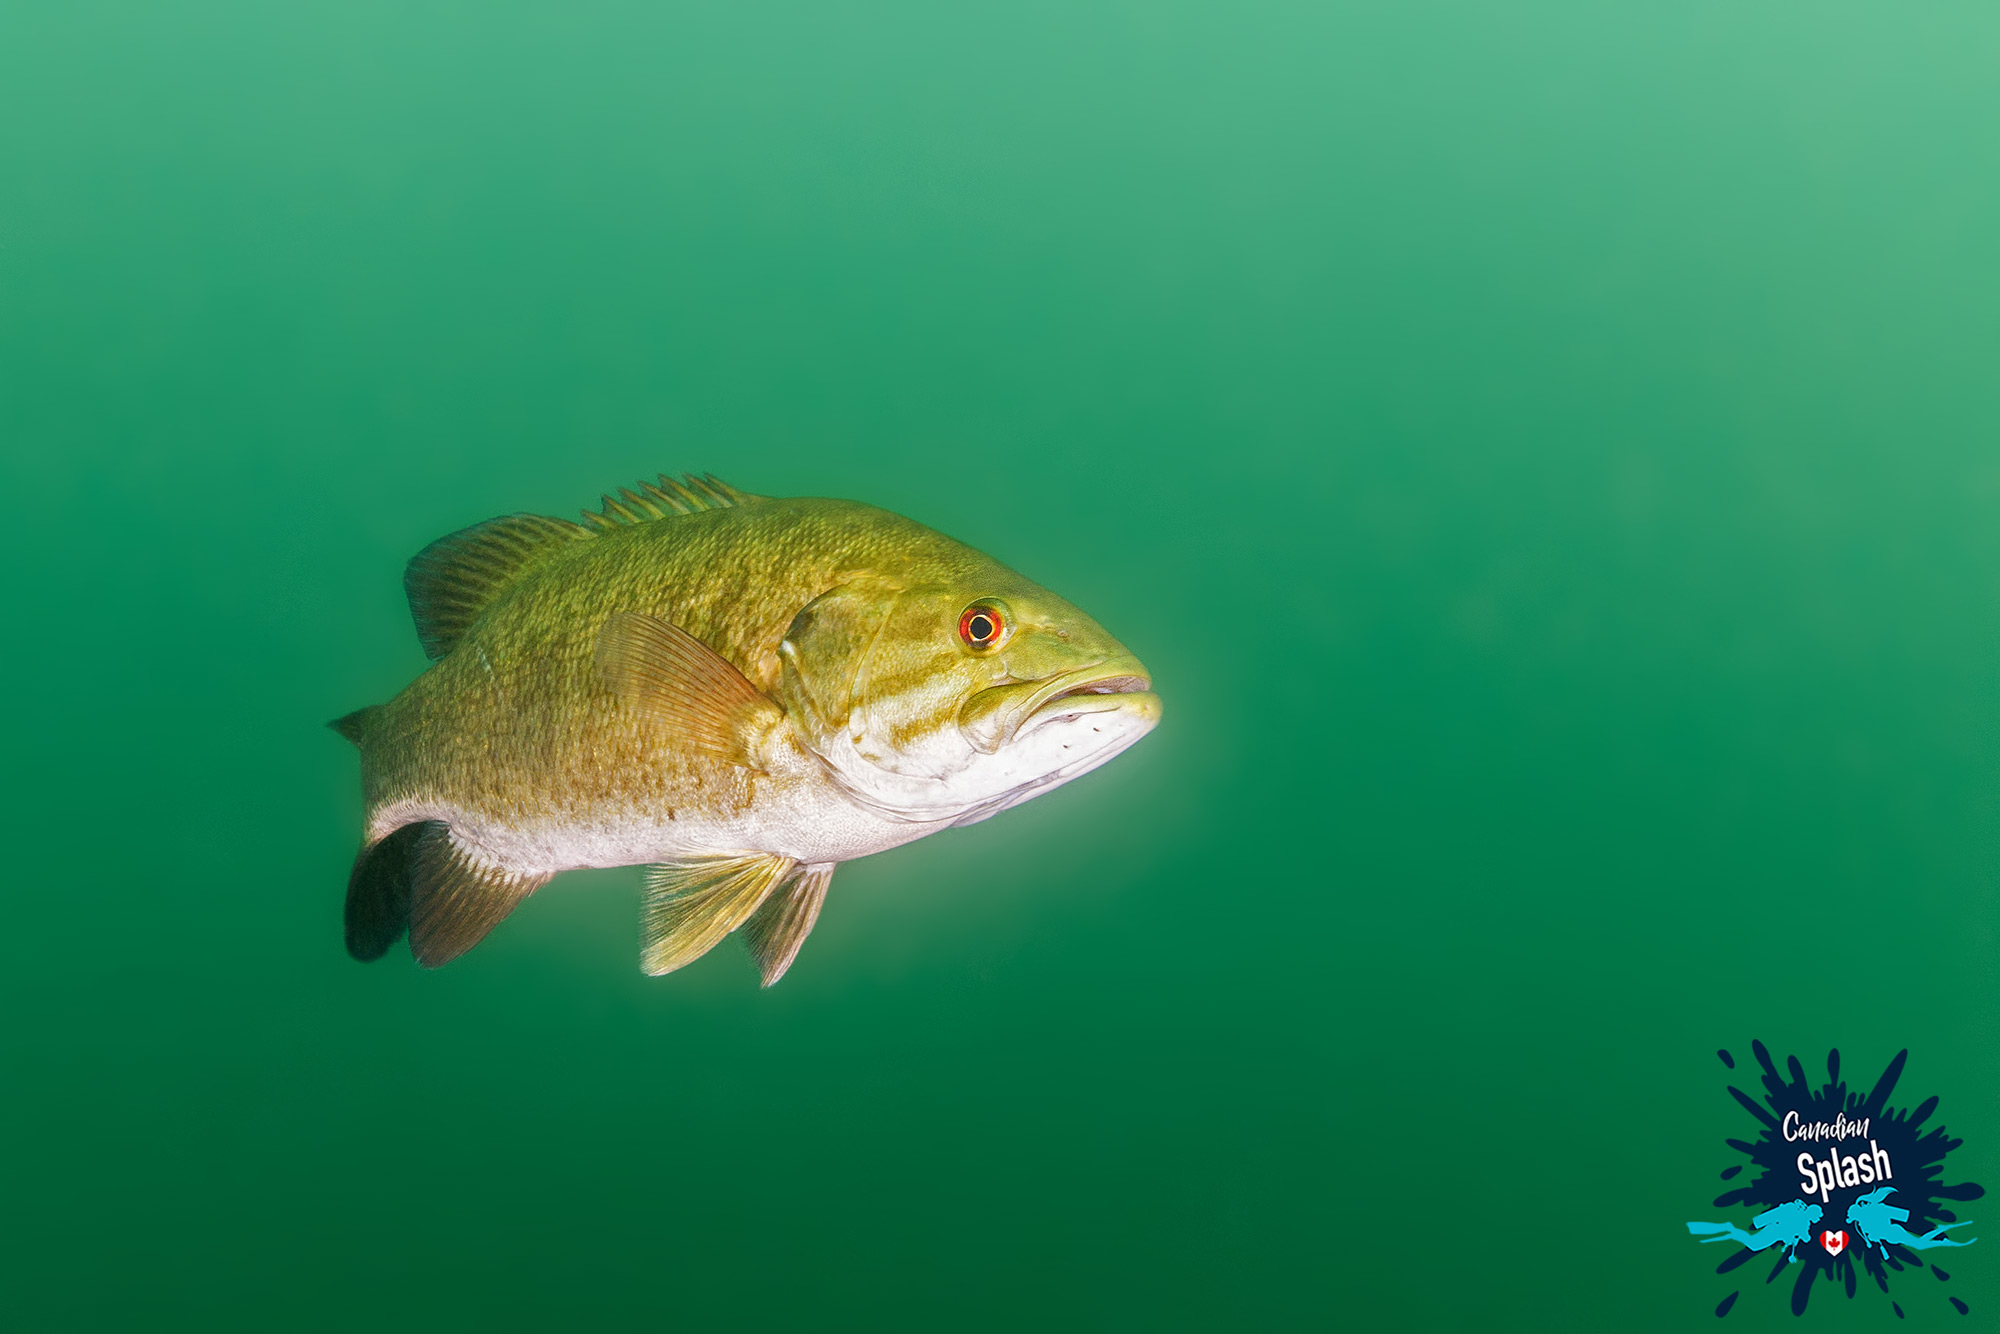 A Red Eyes Bass Fish In The Emerald Waters Of Turtle Lake, Temagami, Ontario Scuba Diving, Canada